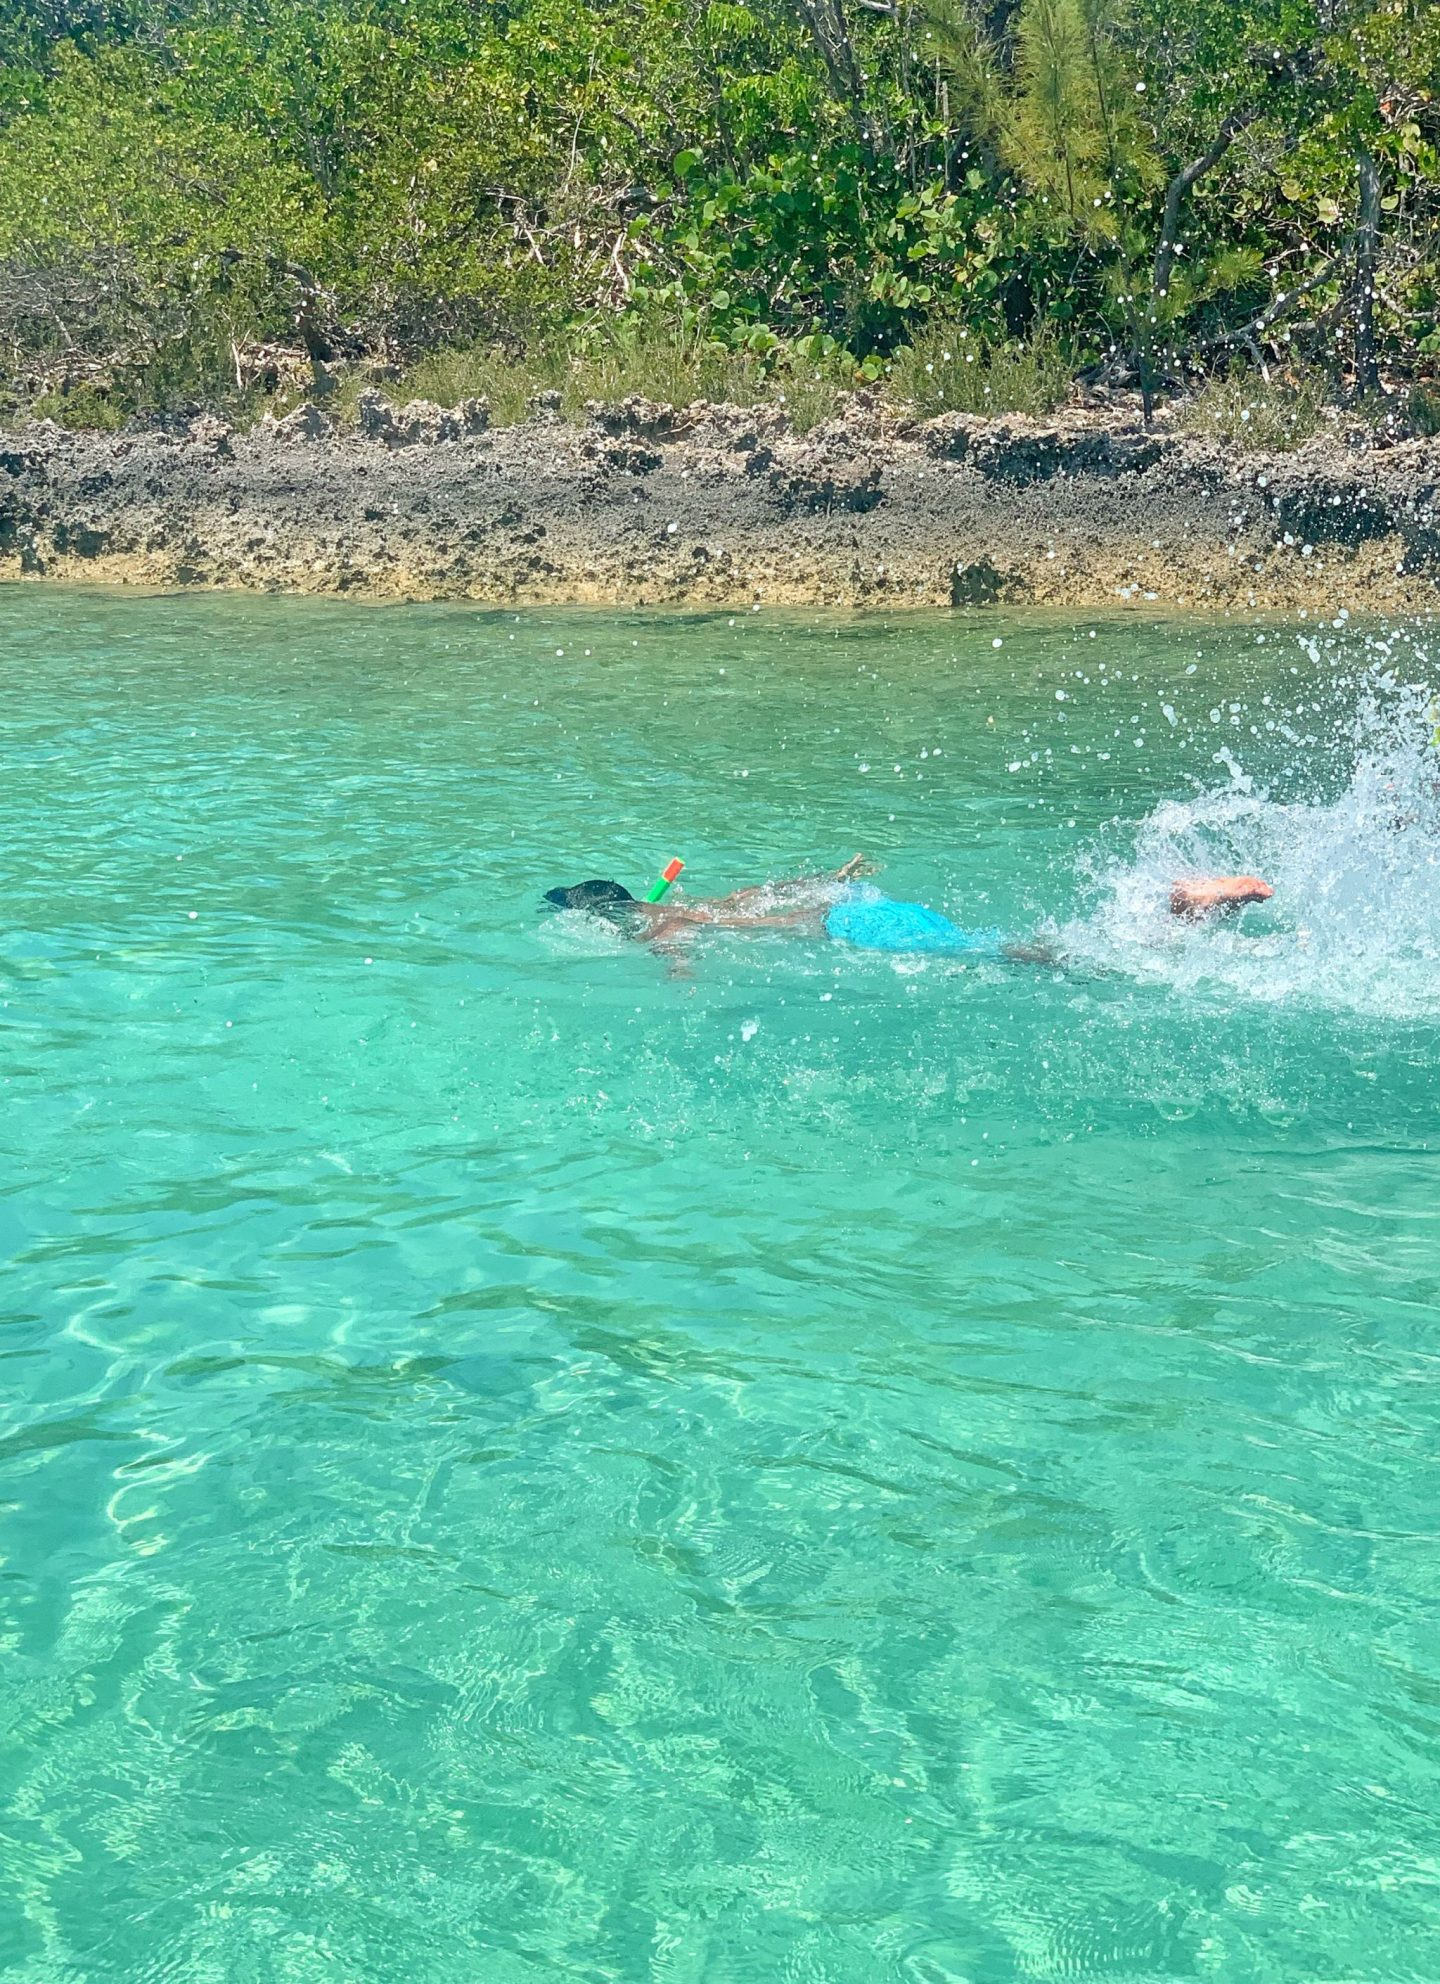 Snorkelling, The Bahamas